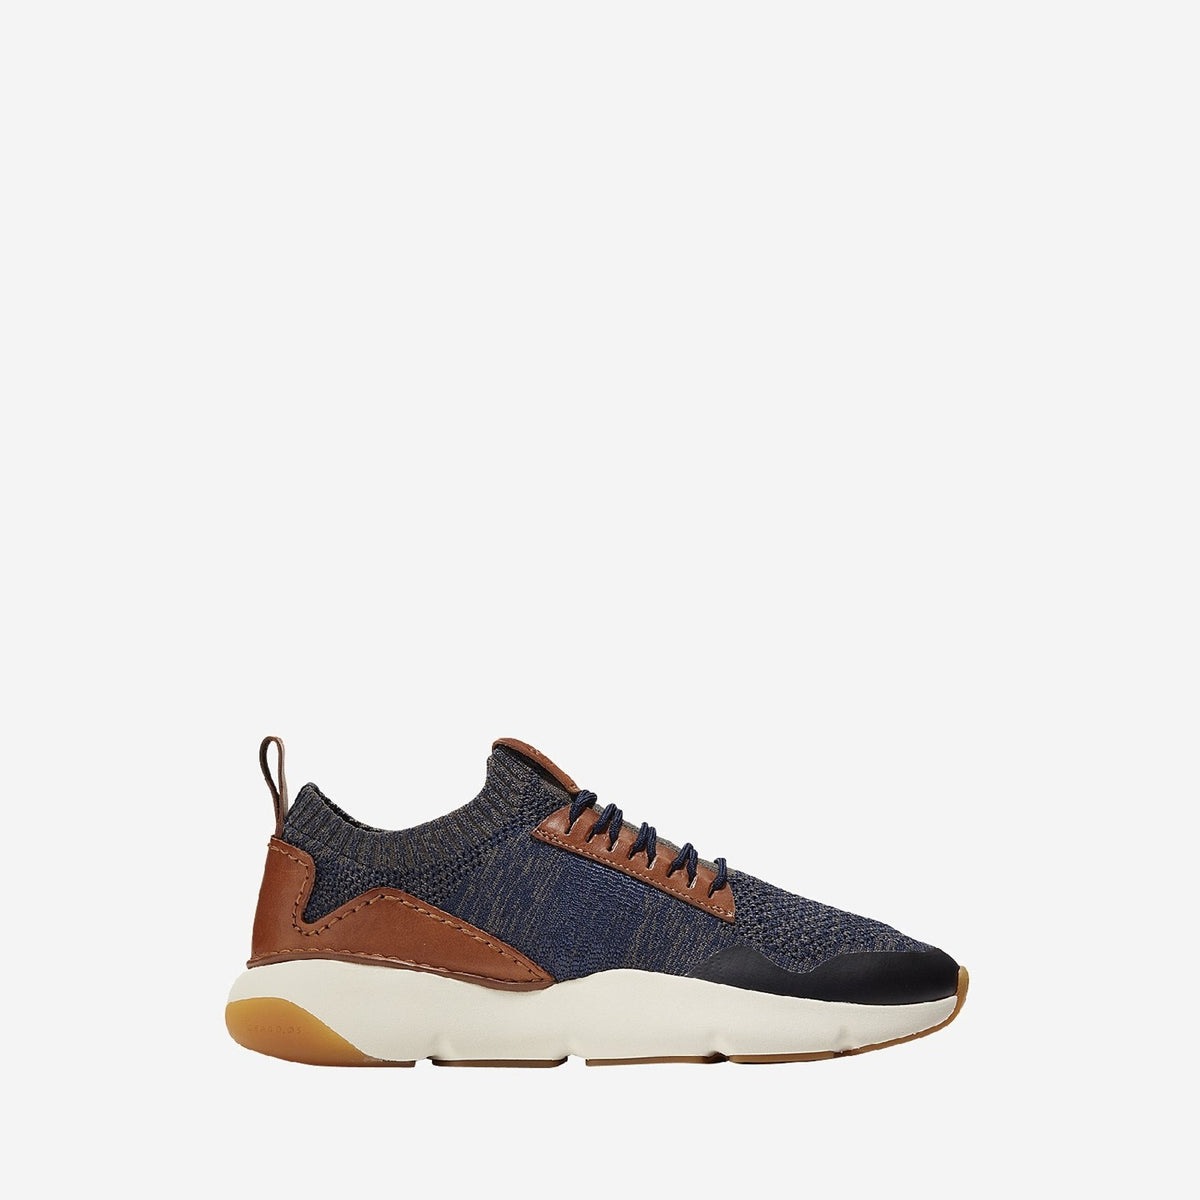 Men's ZERØGRAND All-Day Trainer Blue/Tan